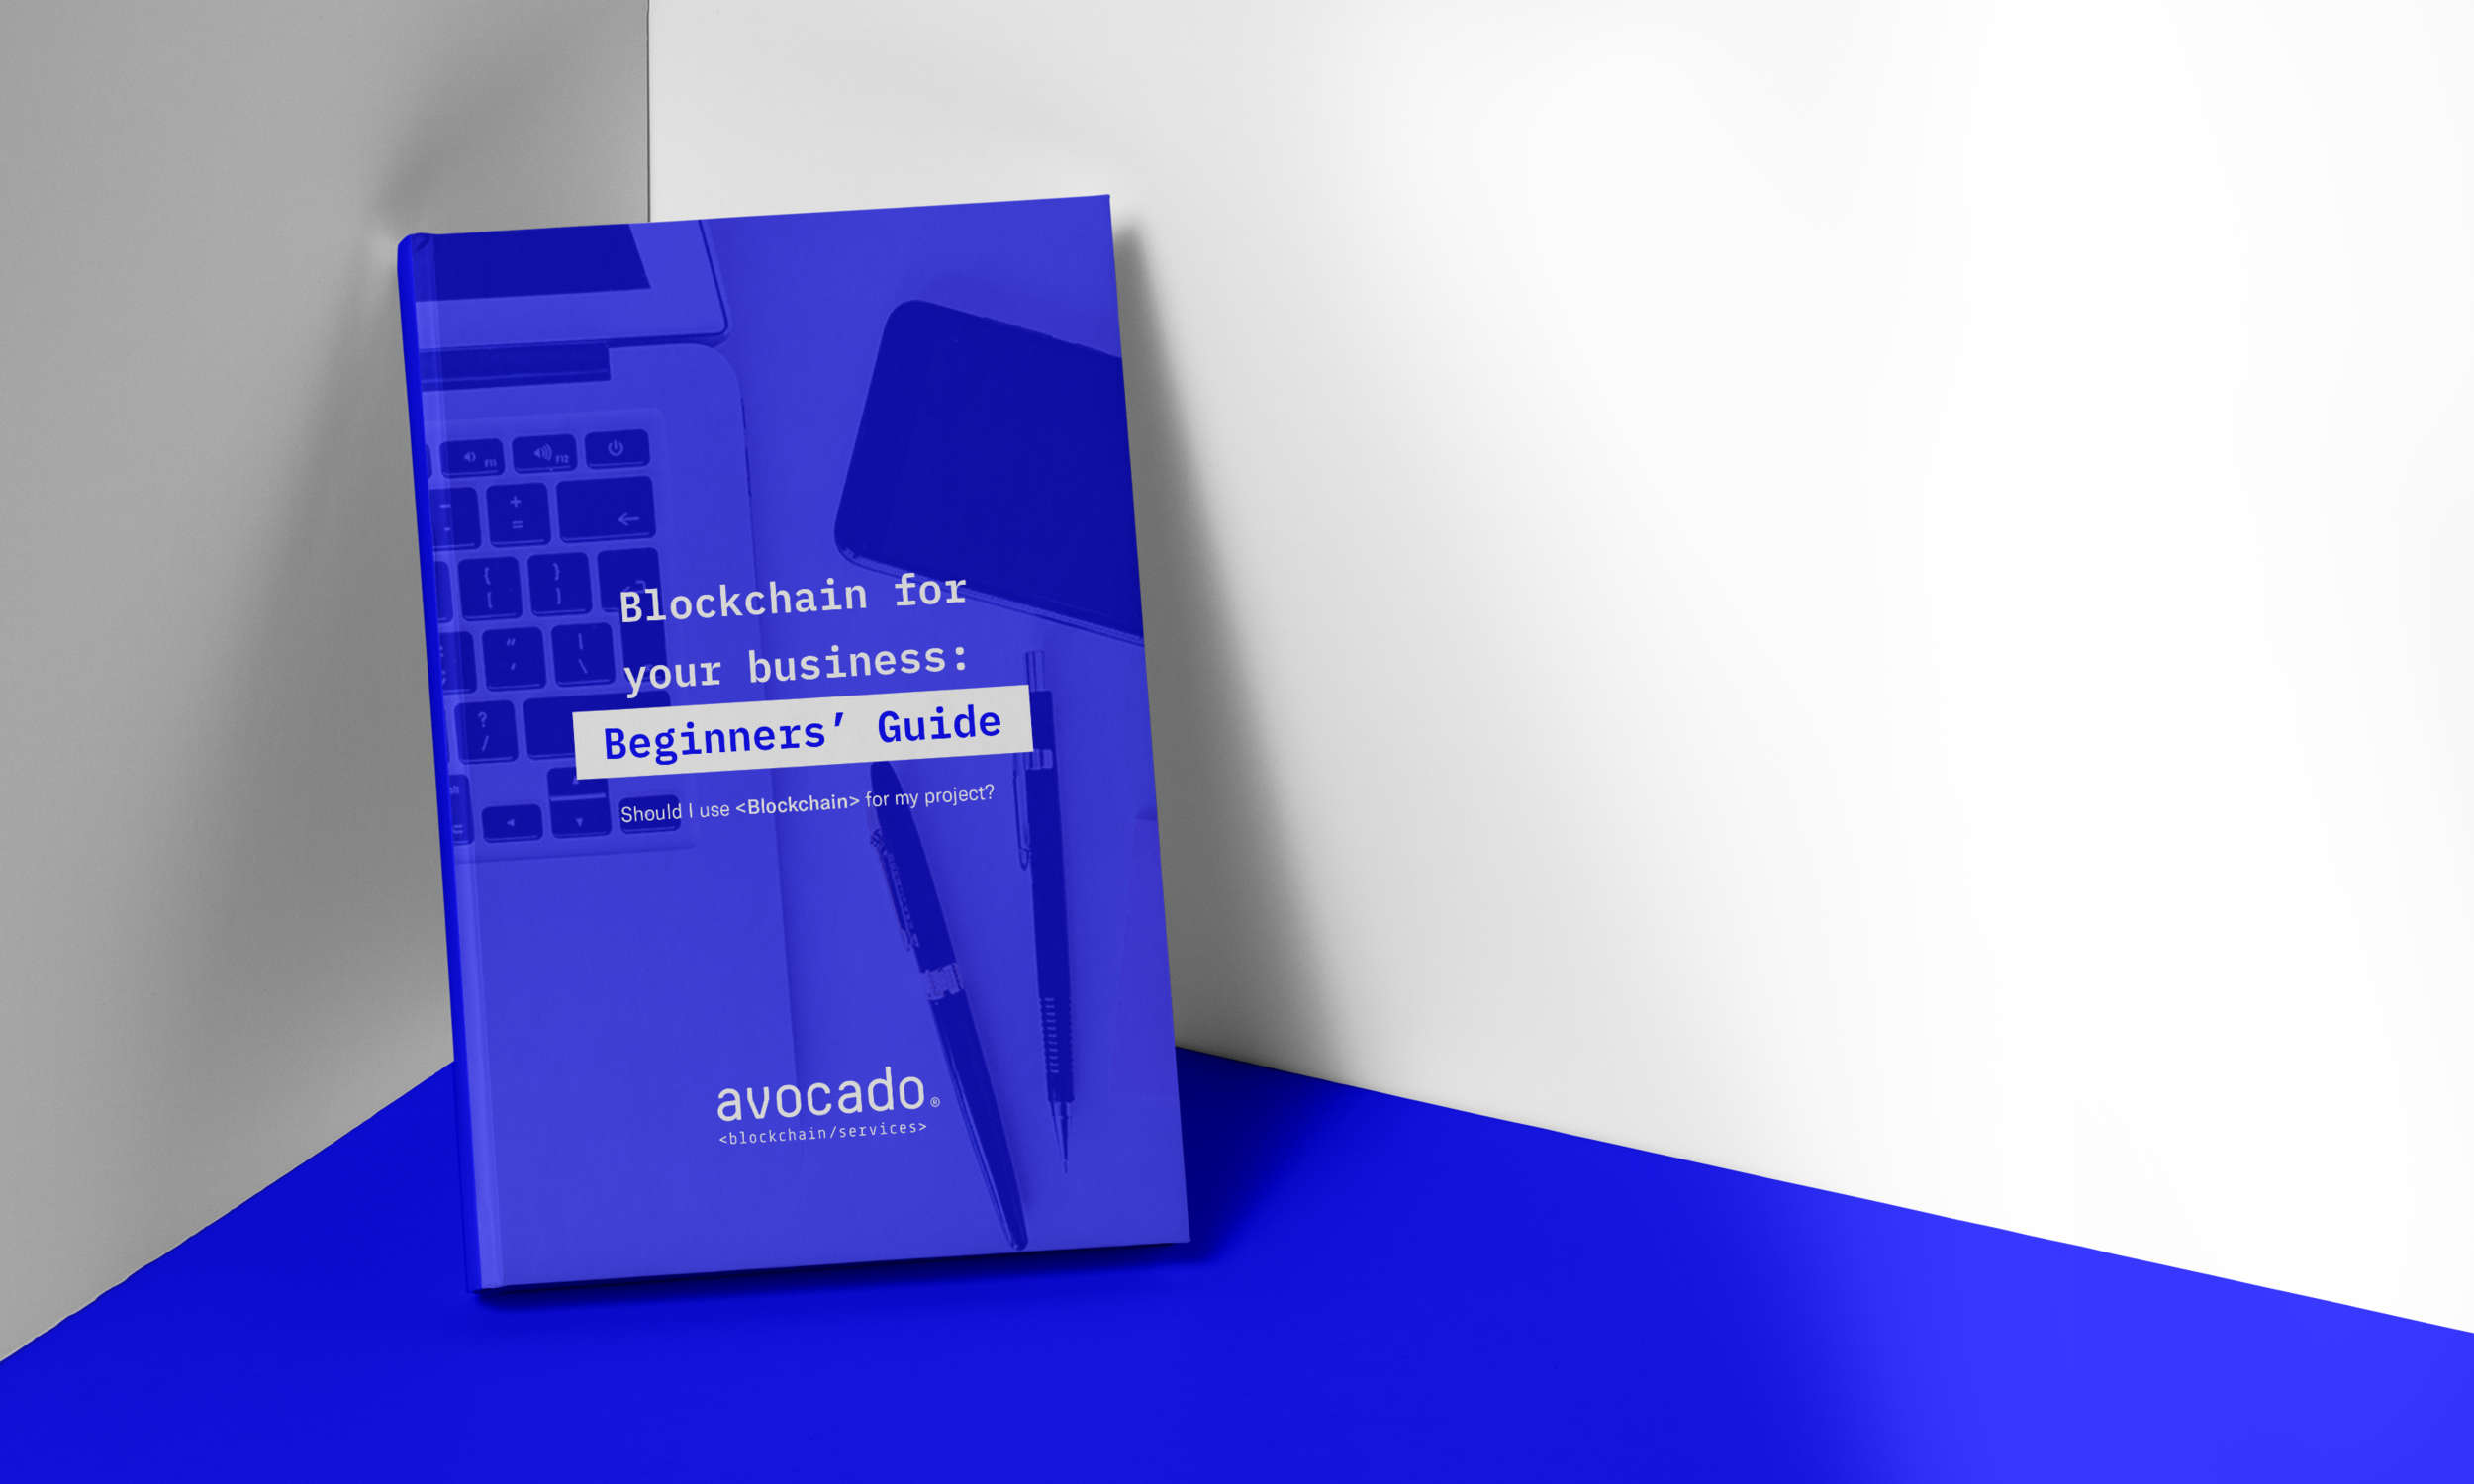 Take the first step to scale your business - If you're wondering whether or not use Blockchain for your business, you need to know: what's Blockchain? How can I use it in my project? Do I really need it?Download this FREE guide to know if you need Blockchain for your business. Don't stay behind!